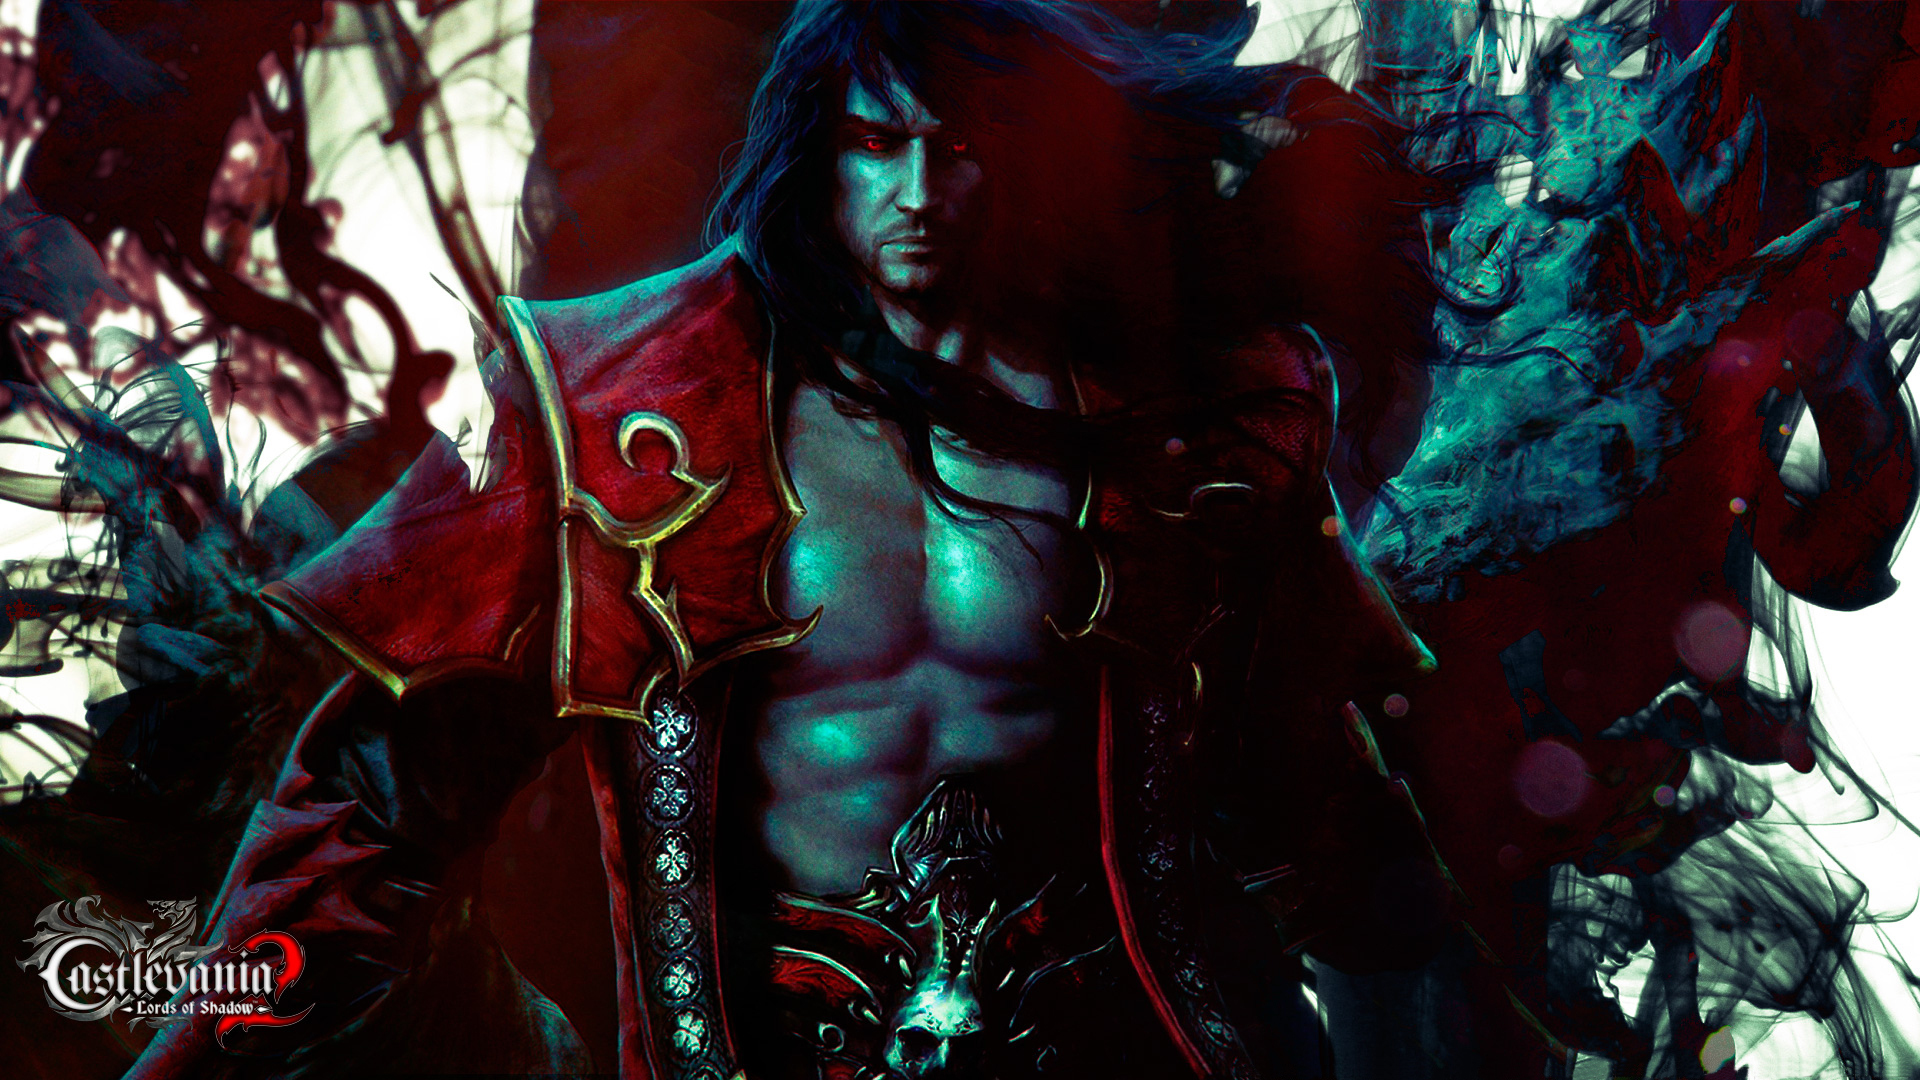 Wallpaper Castlevania: Lords of Shadow 2, video game, warrior